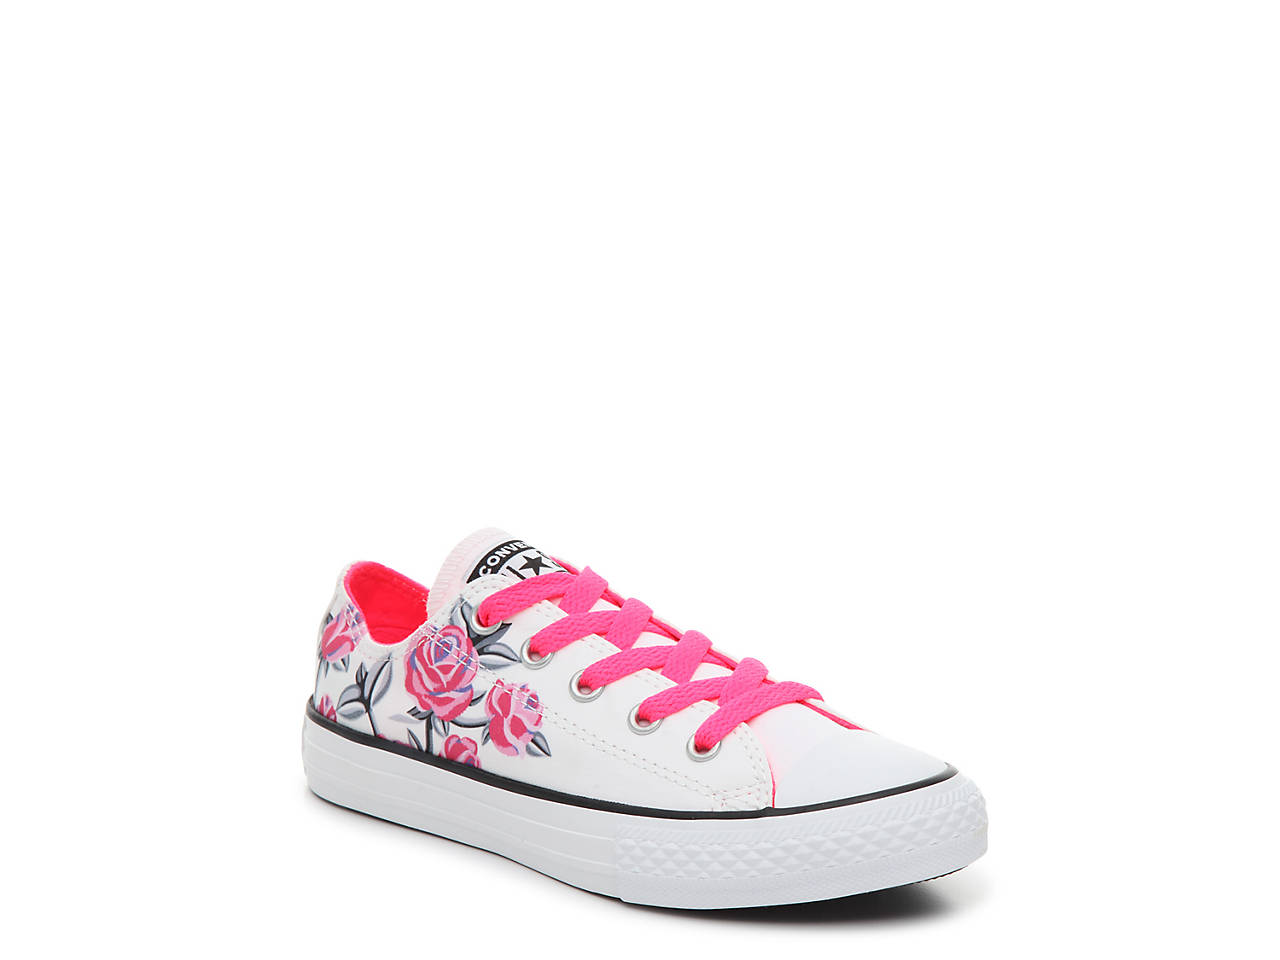 Chuck Taylor All Star Pretty Strong Toddler & Youth Sneaker